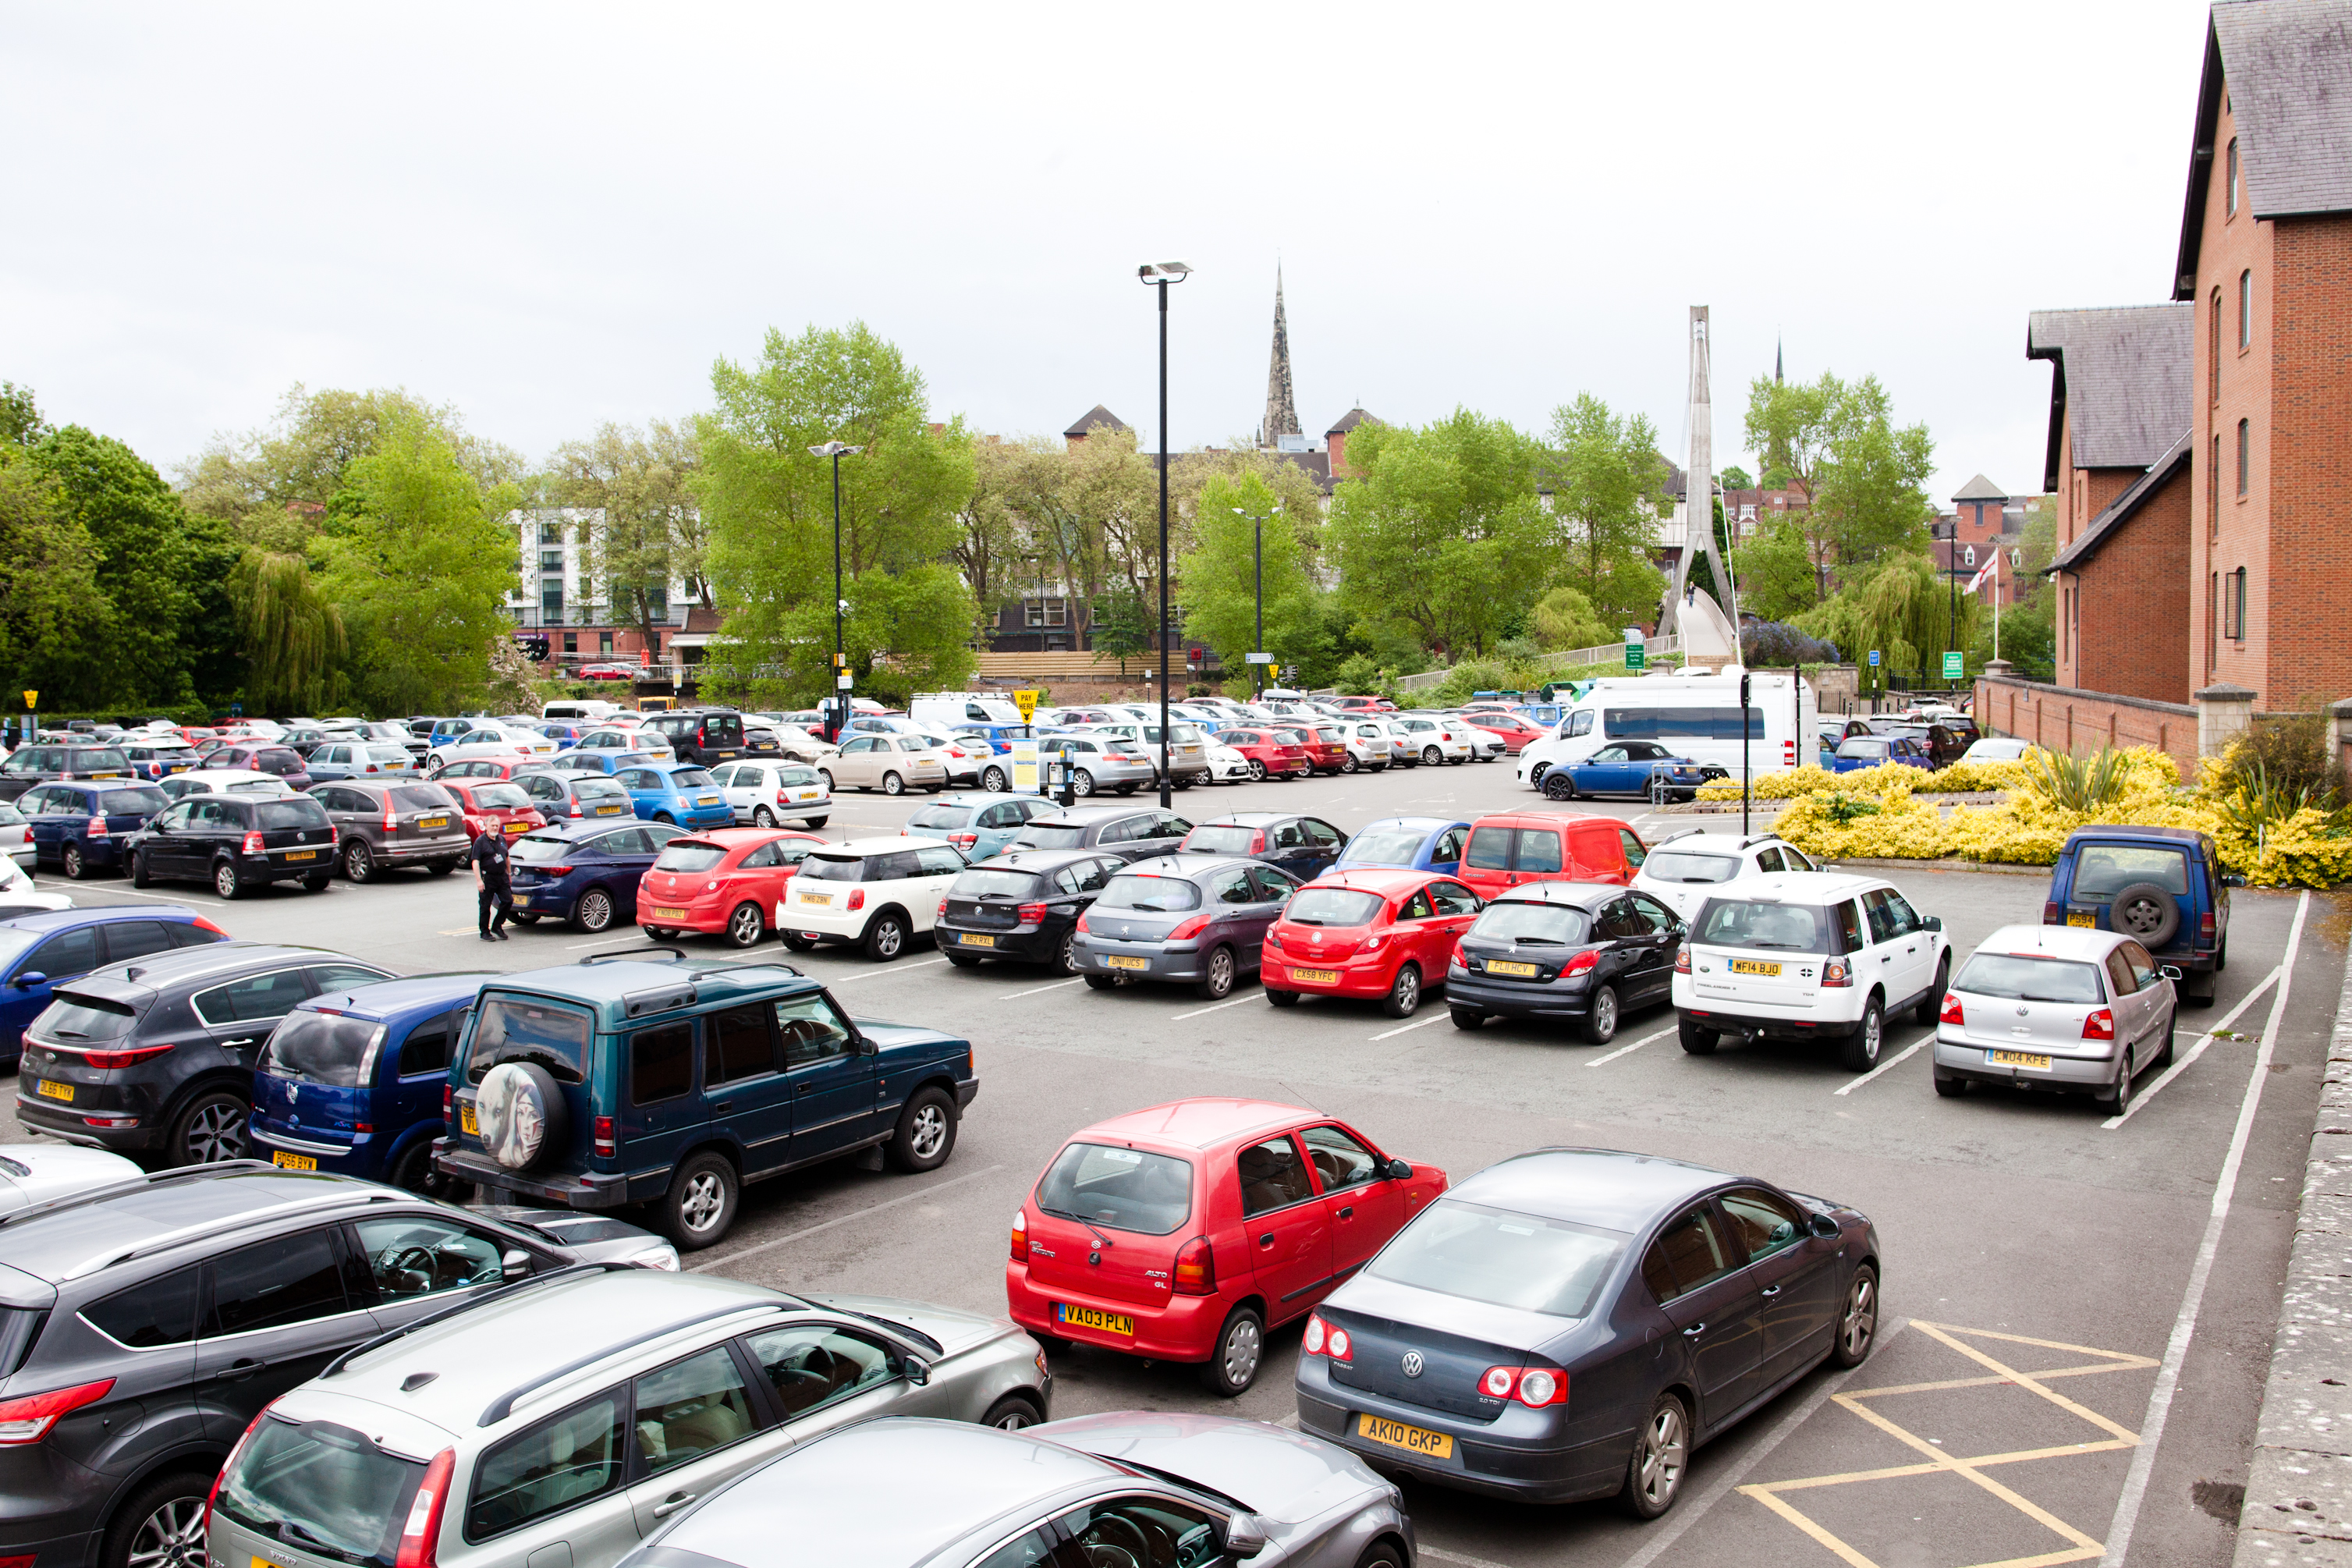 Free Parking Scheme Sees Increase In Visitors To Shrewsbury Shrewsbury Bid